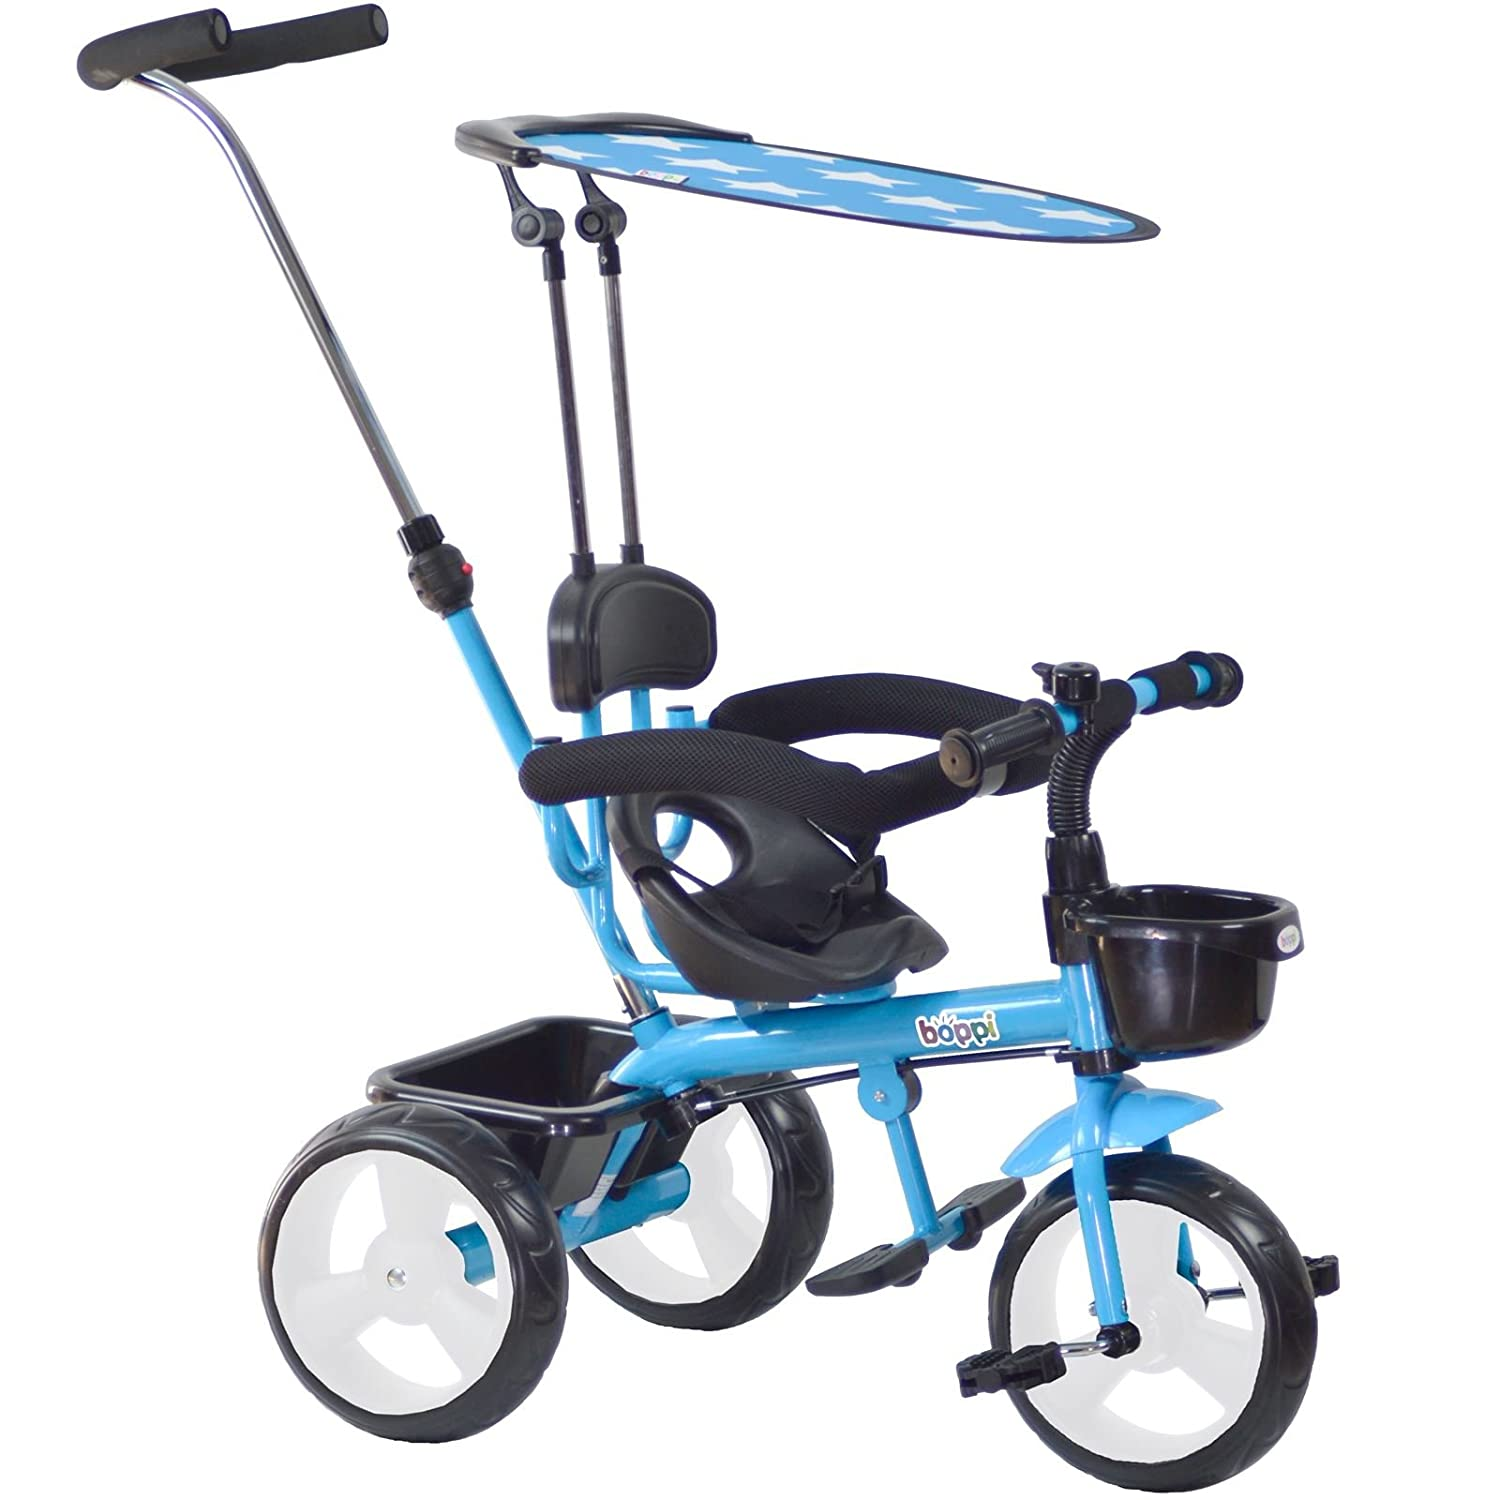 boppi 4 in 1 Childrens B01LBC669E Trike Tricycle 9-36 9-36 Months Trike - Blue 141[並行輸入] B01LBC669E, アナミズマチ:be8e7f93 --- number-directory.top